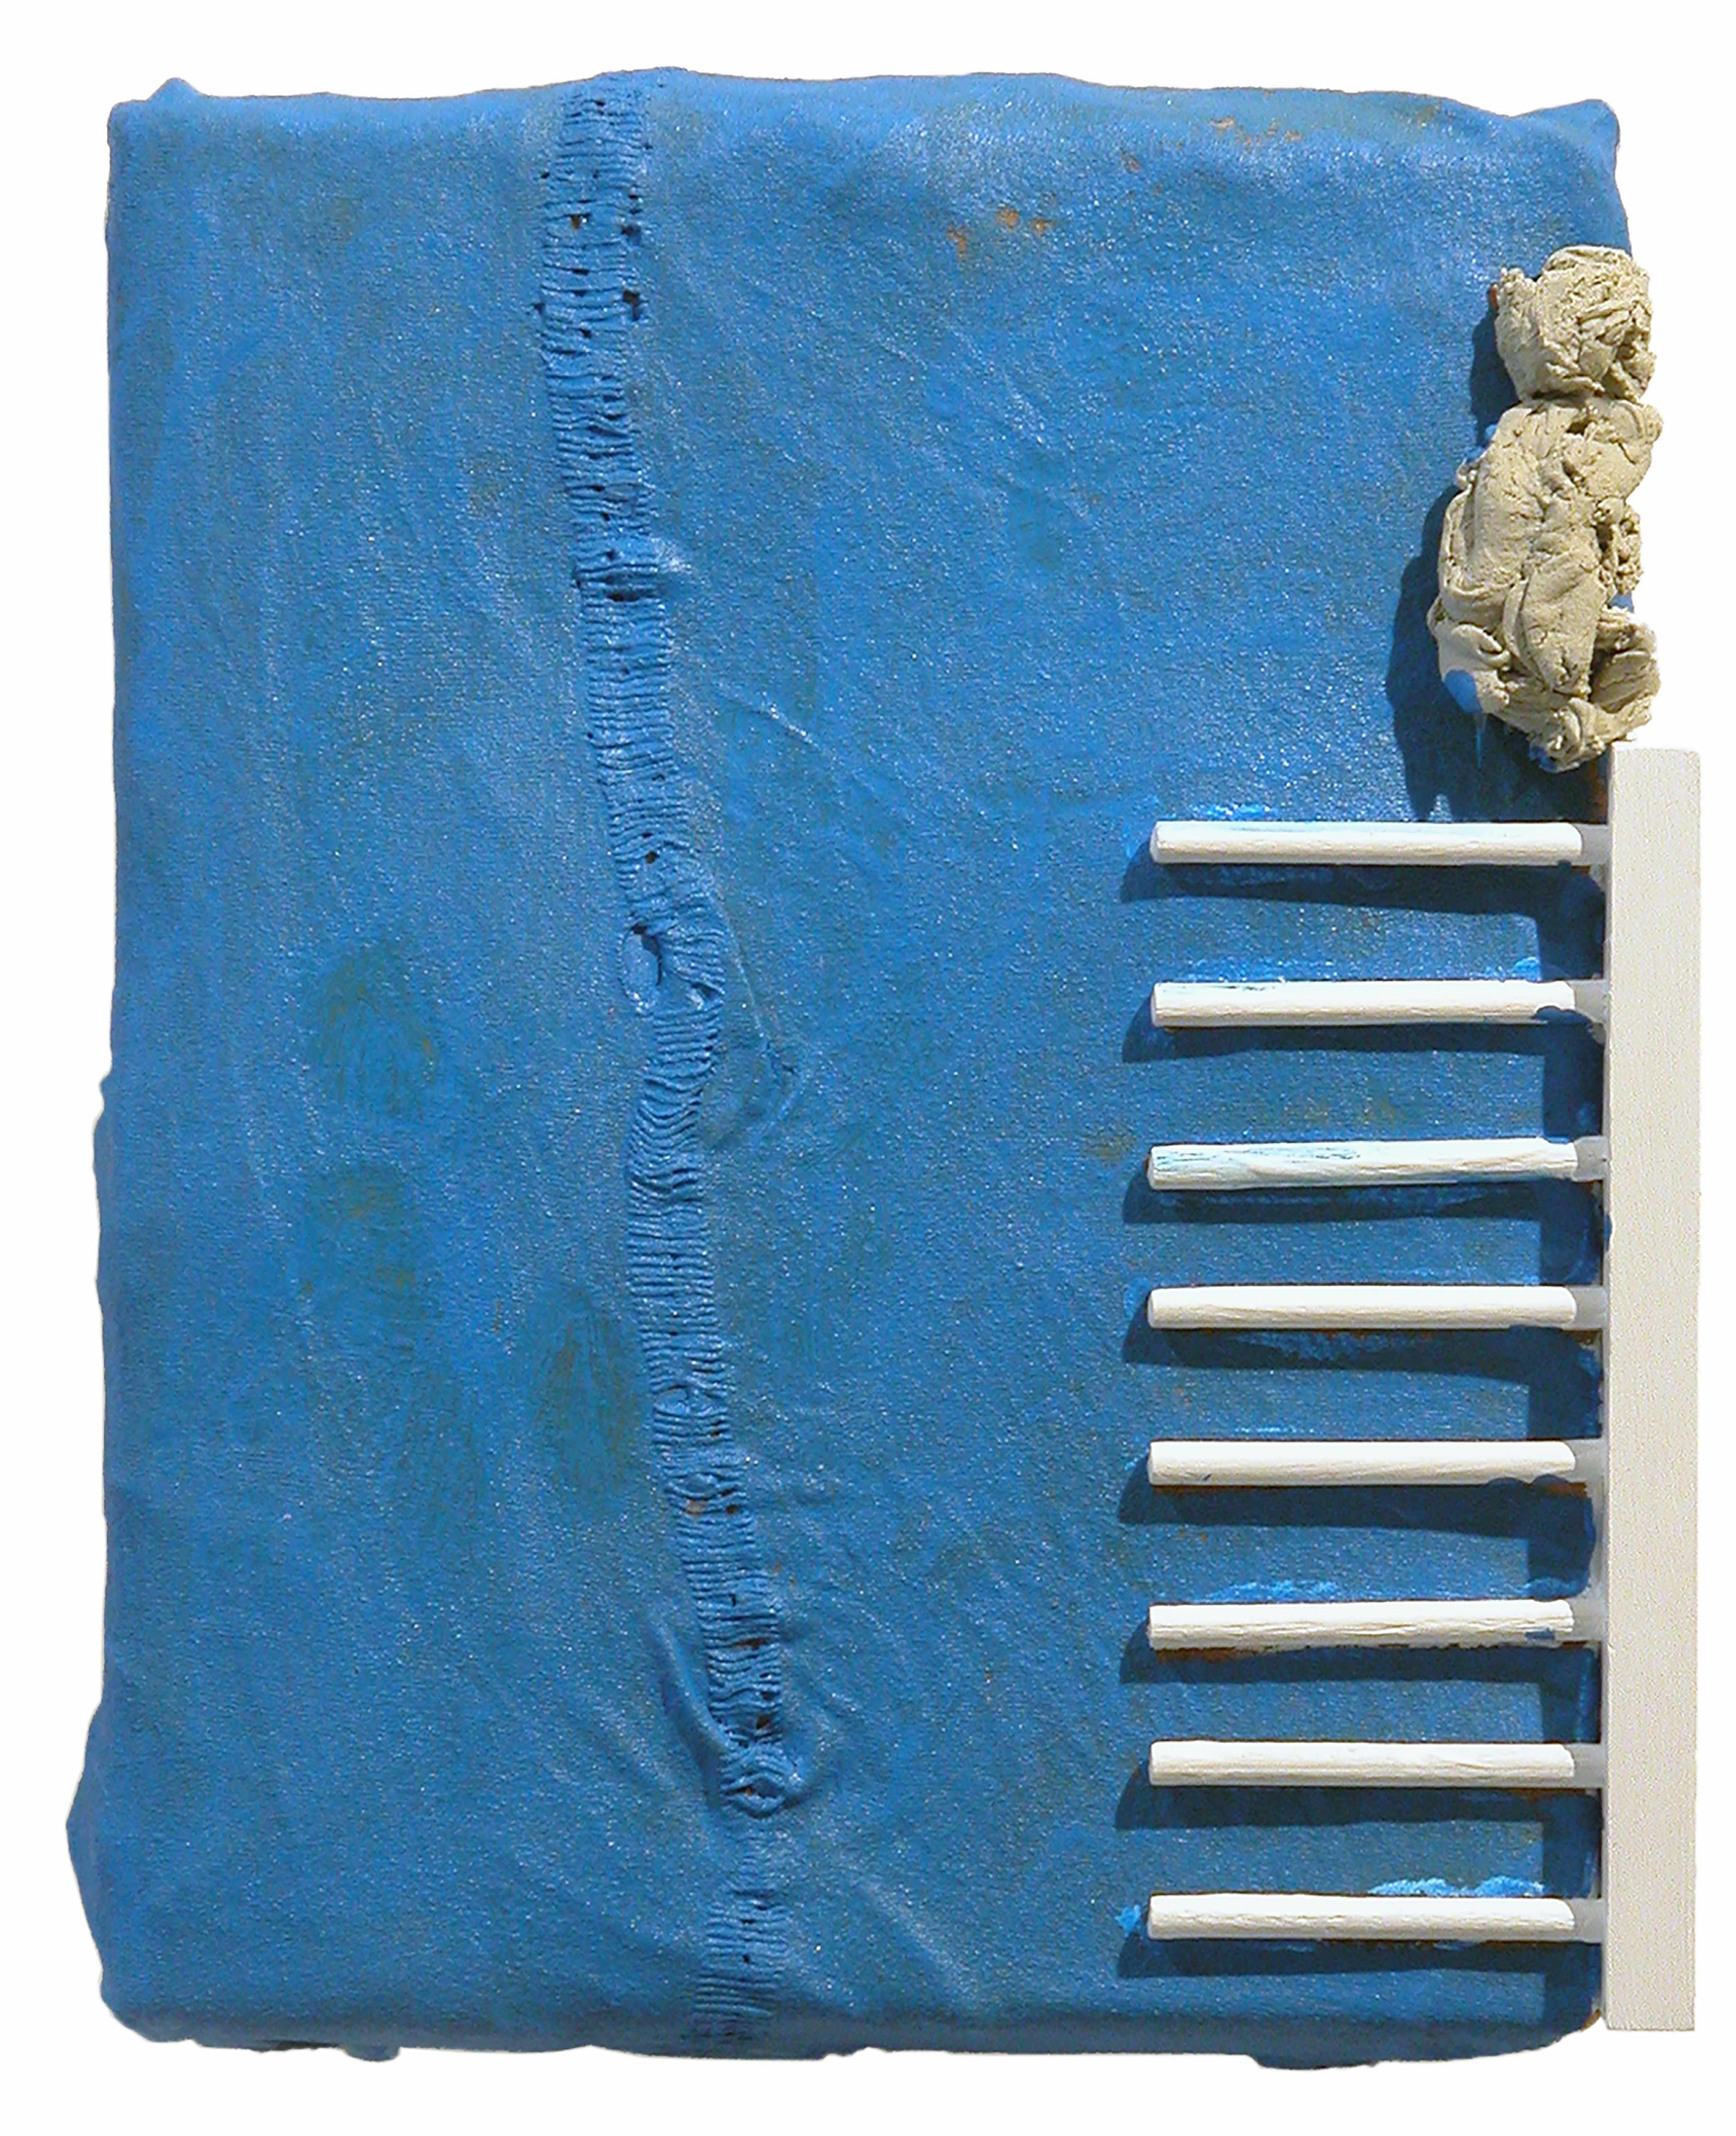 Drew Beattie  KT   2006 acrylic, bondo, wood and fabric on canvas 16½ x 12 inches